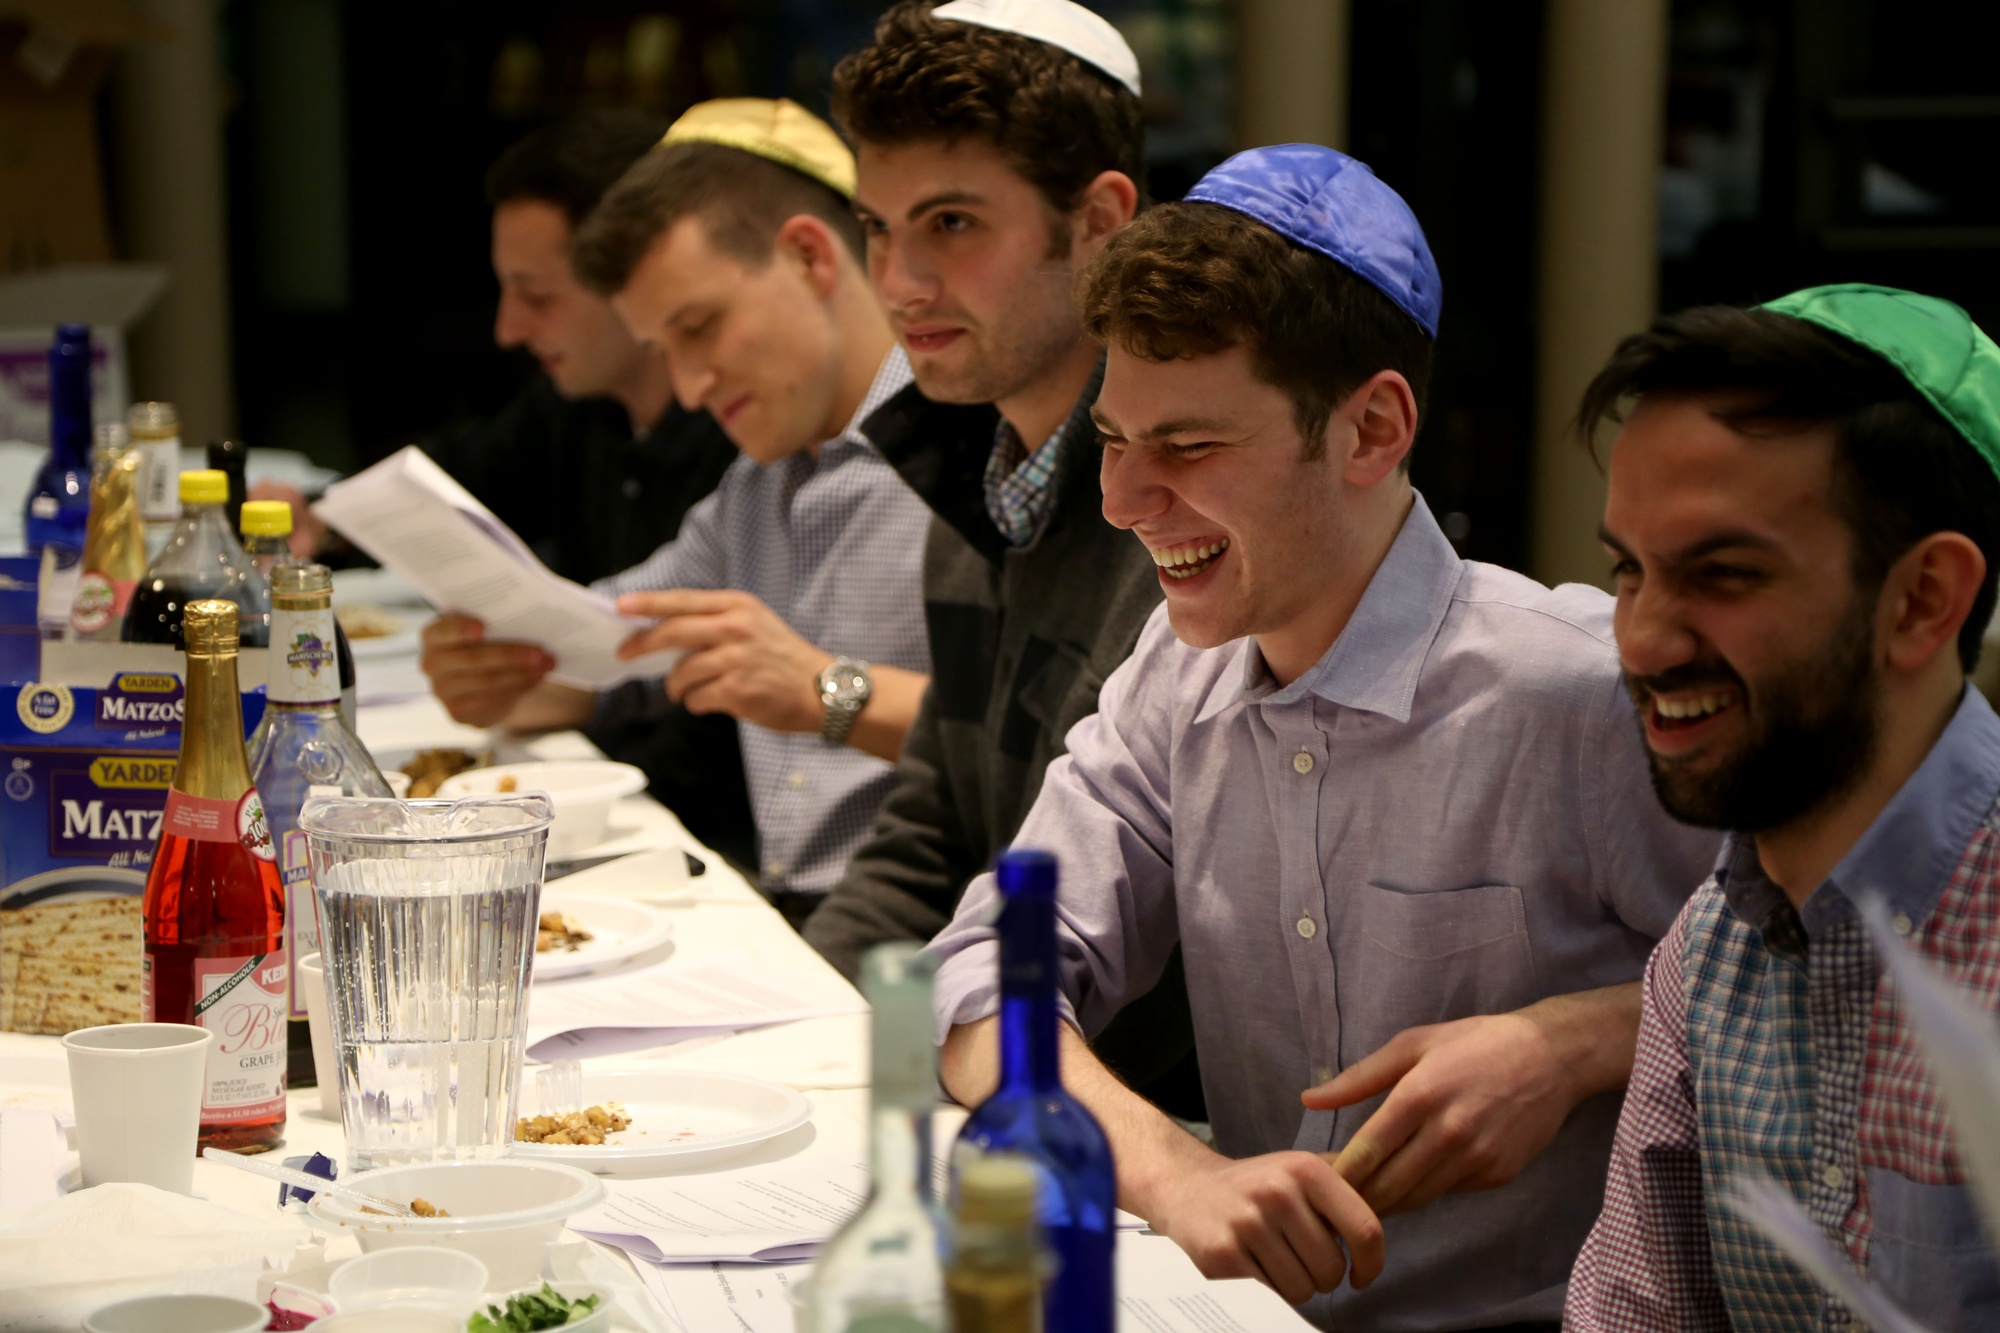 From right, Alpha Epsilon Pi brothers Aaron E. Pelz '16, Crimson editor Gregory A. Briker '17, Ethan S. H. Fried '16, and Jacob S. Goldberg '16 celebrate Passover during a seder, a traditional Jewish ritual, in Hillel on Saturday evening.